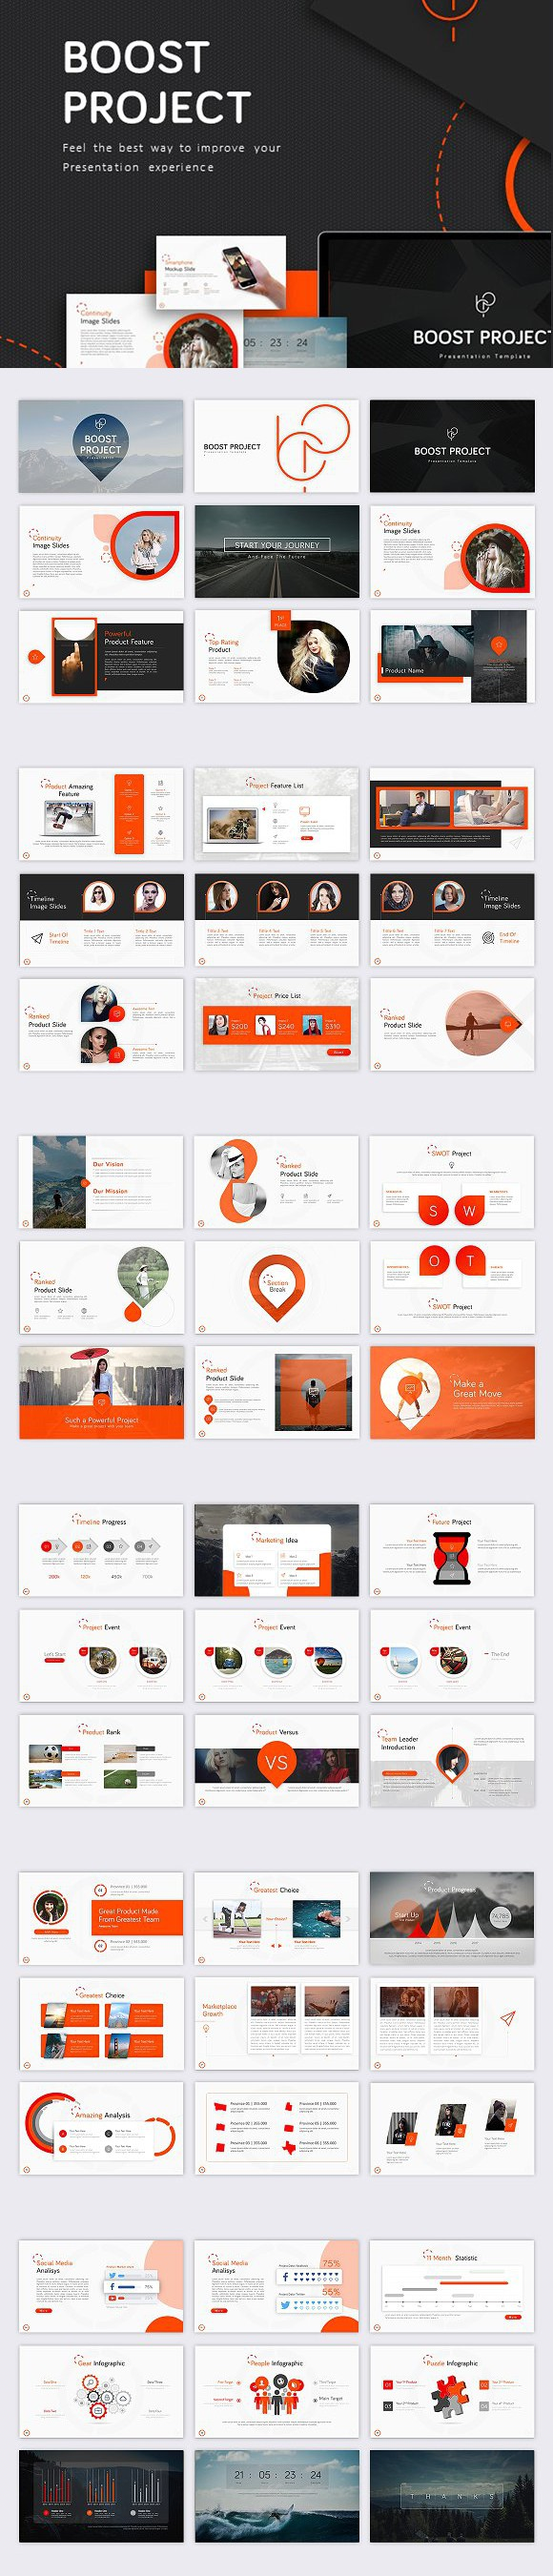 Boost Project - Powerpoint Template. Presentation Templates ...